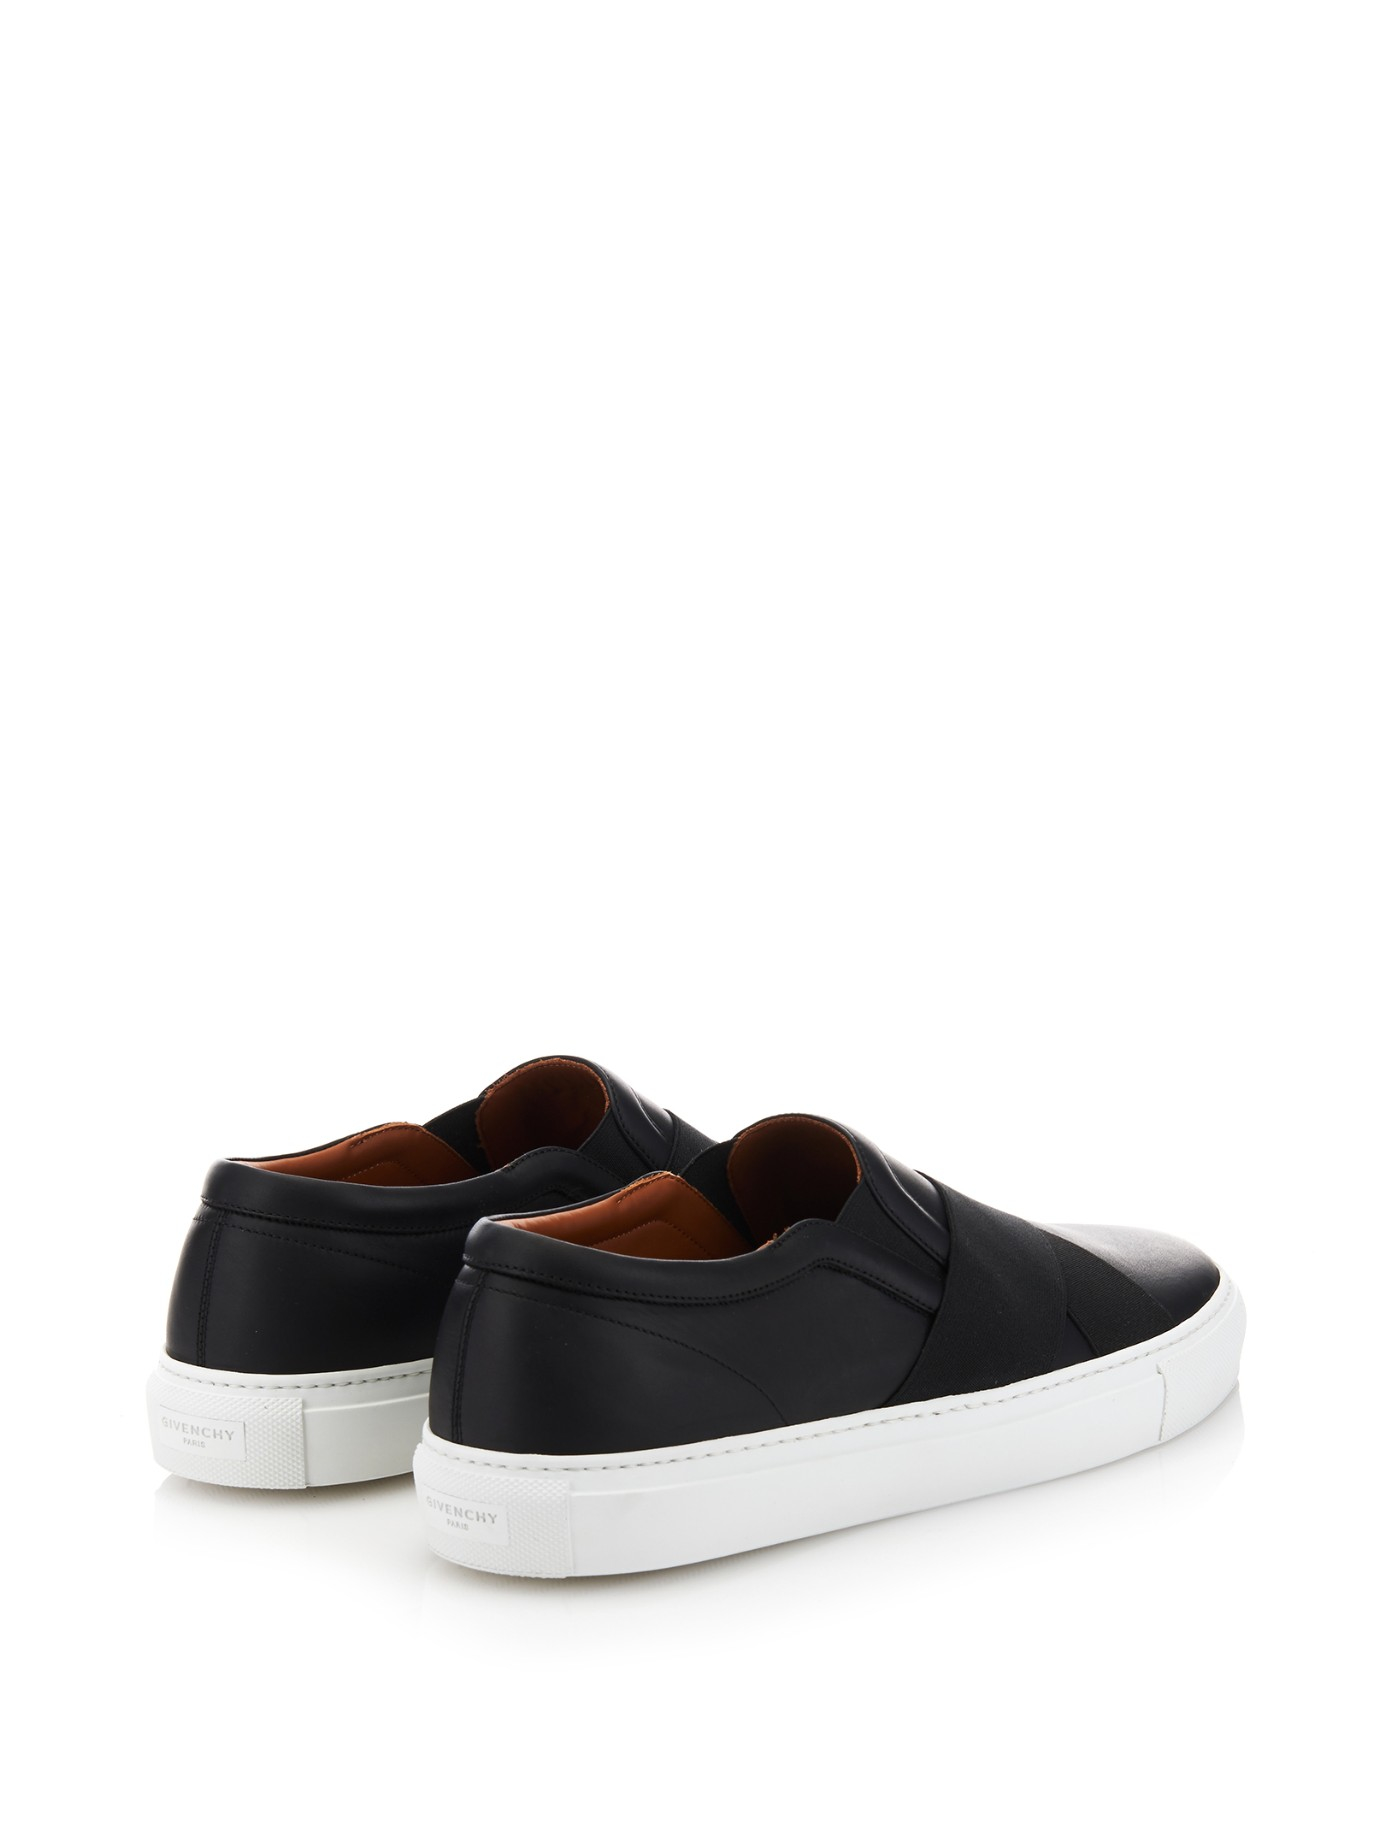 Givenchy Sneaker slip on Skate Elastic leather black 5nrSH